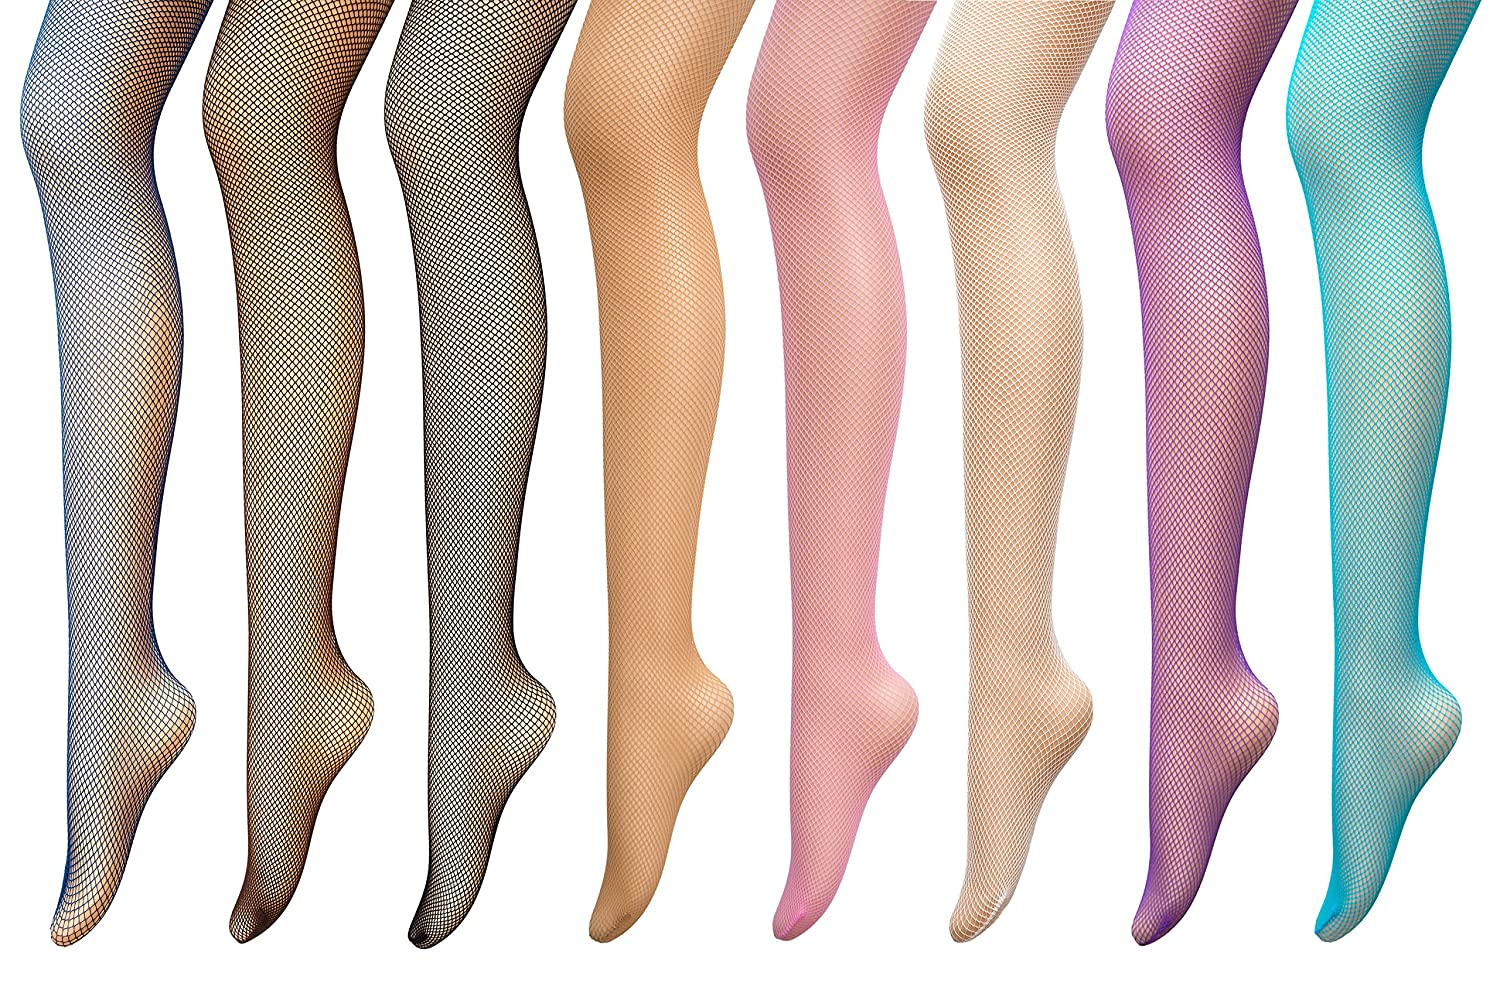 1920s Style Stockings, Tights, Fishnets & Socks PreSox Fishnet Tights Seamless Nylon Mesh Stockings Control Top Sheer Pantyhose for Women Girls 8 Color $19.99 AT vintagedancer.com